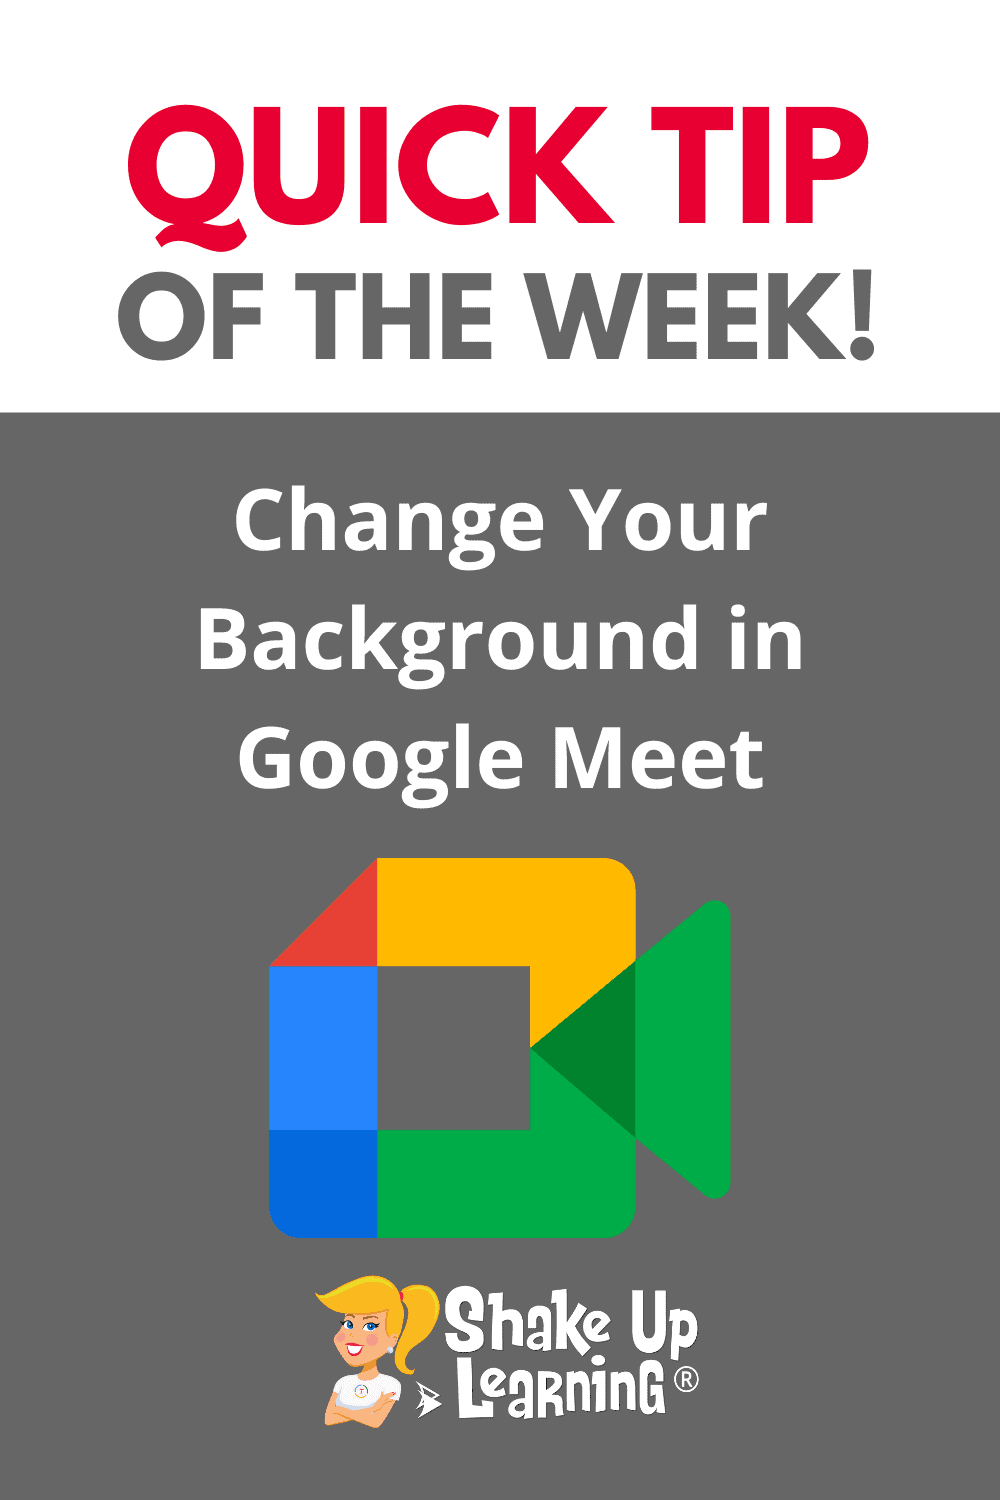 How to Change the Background in Google Meet